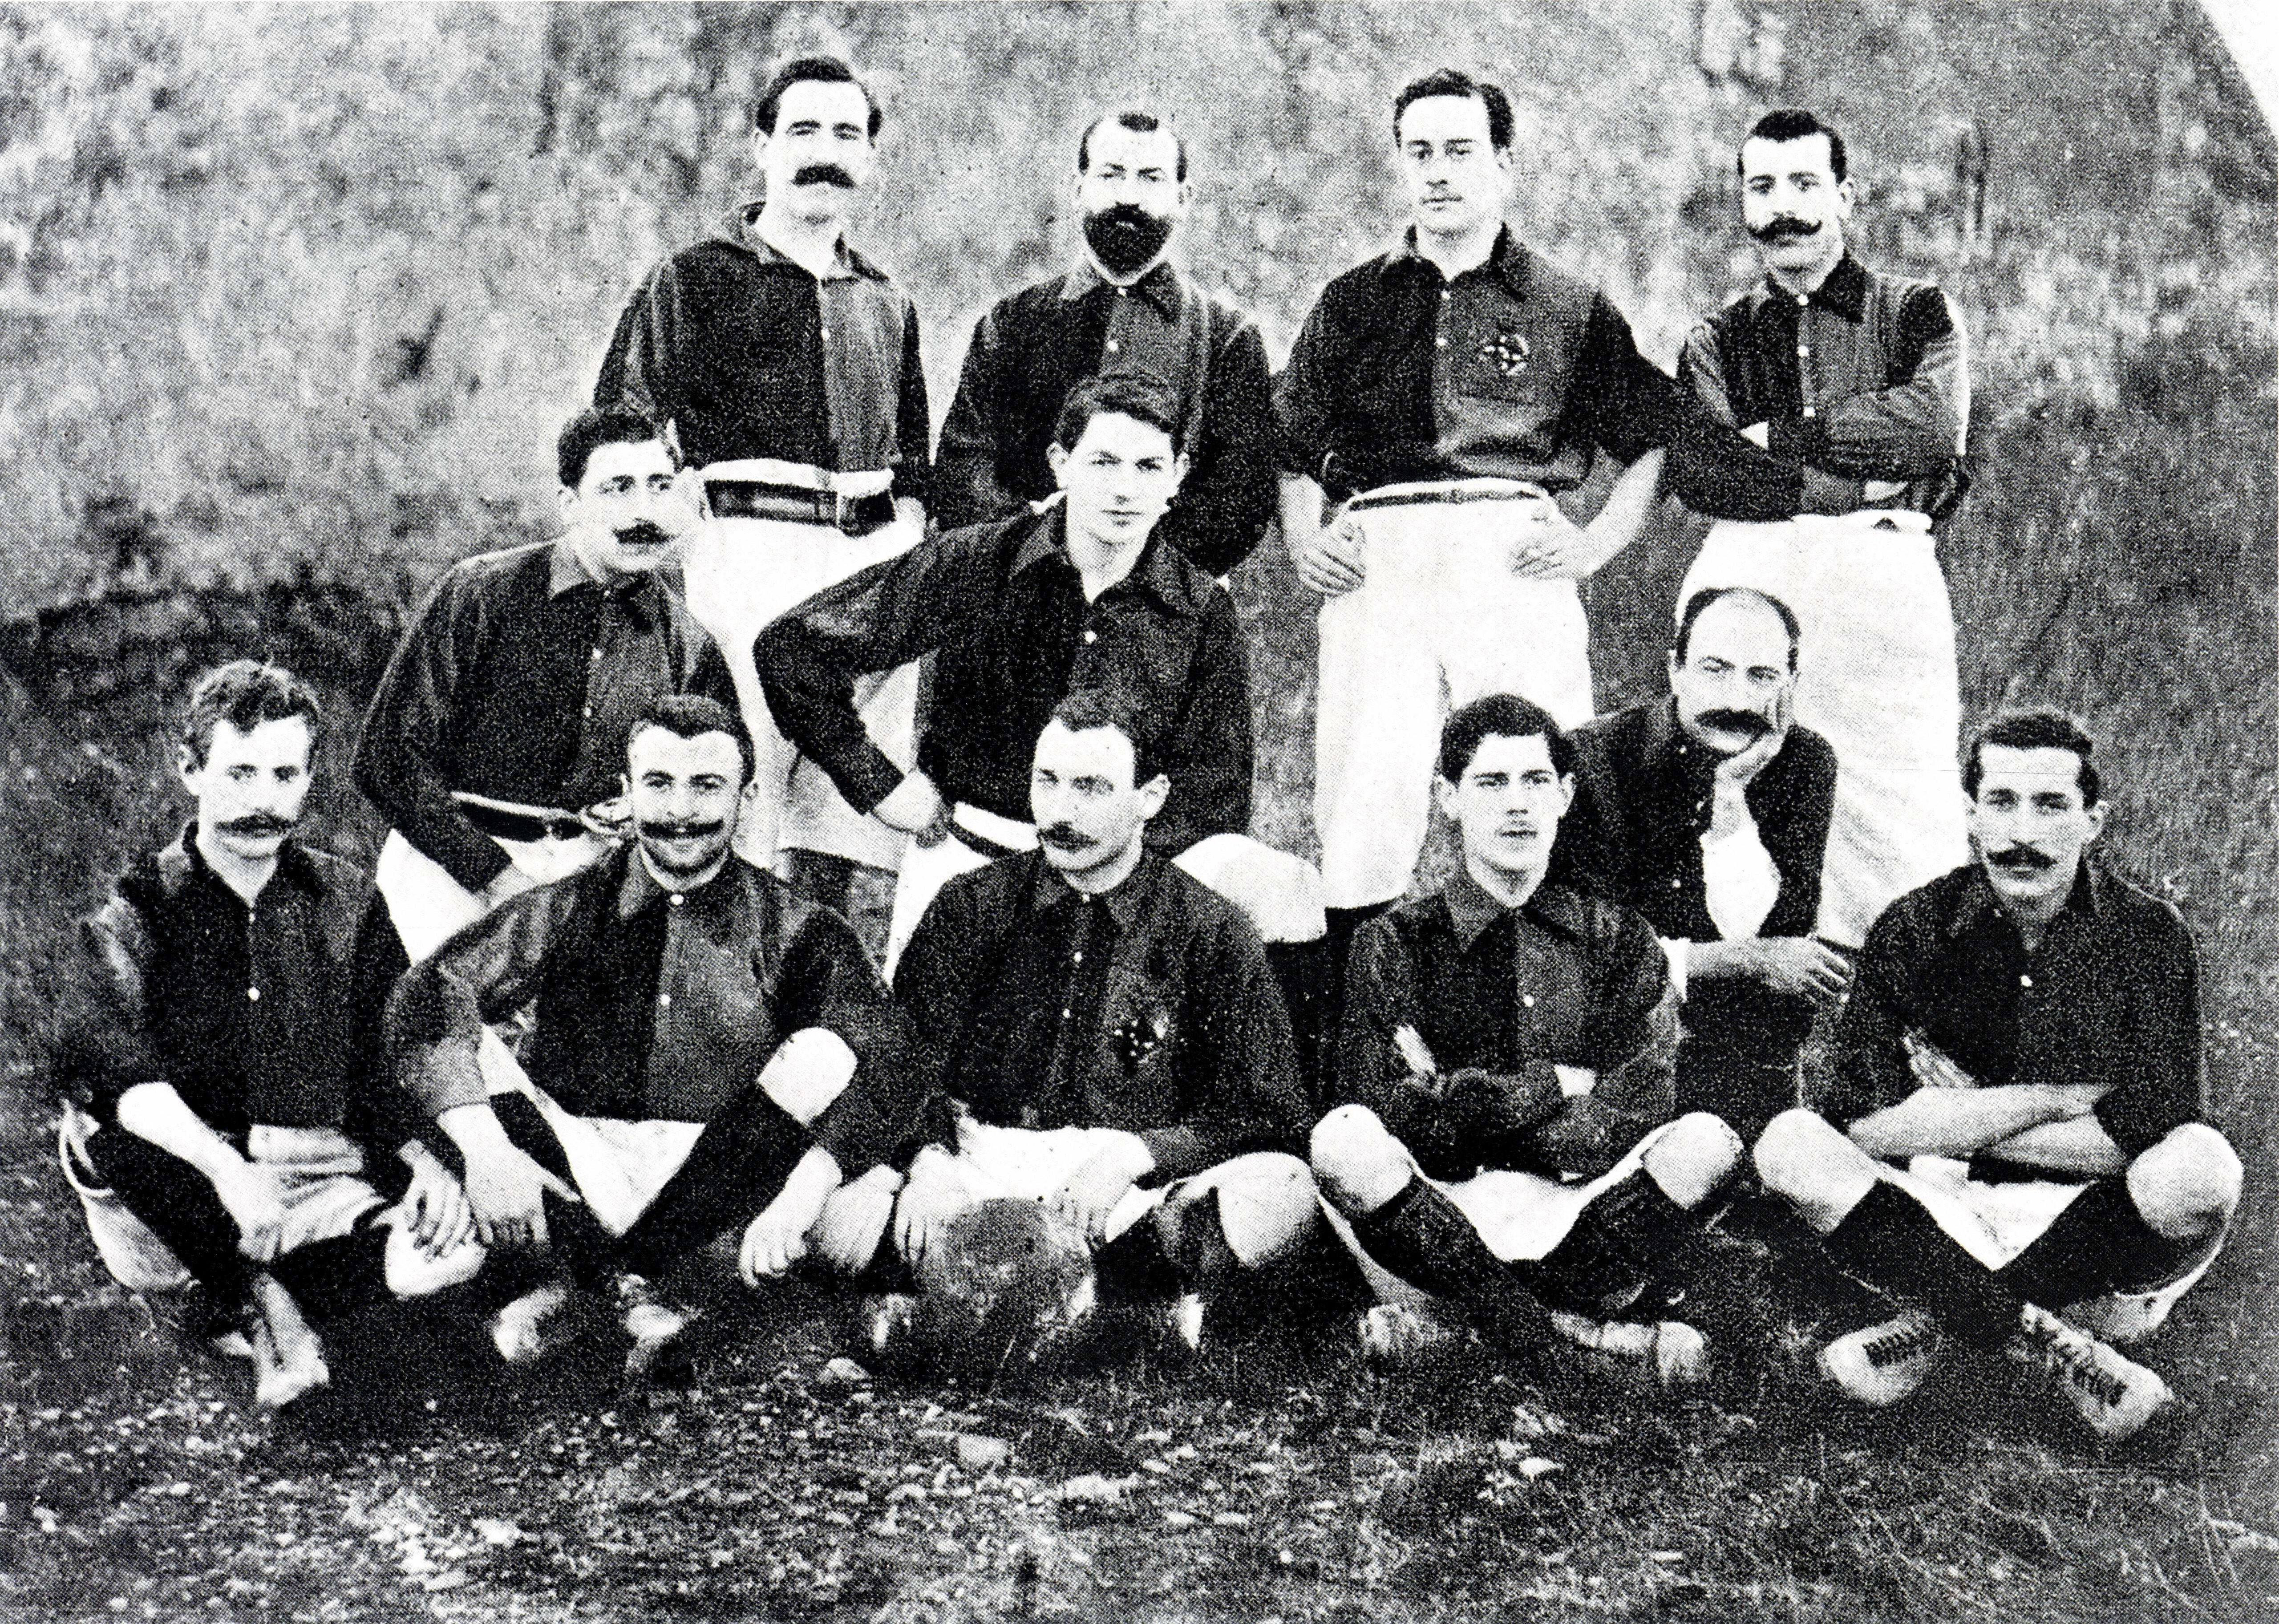 On December 8th 1899, Barça played their first ever game